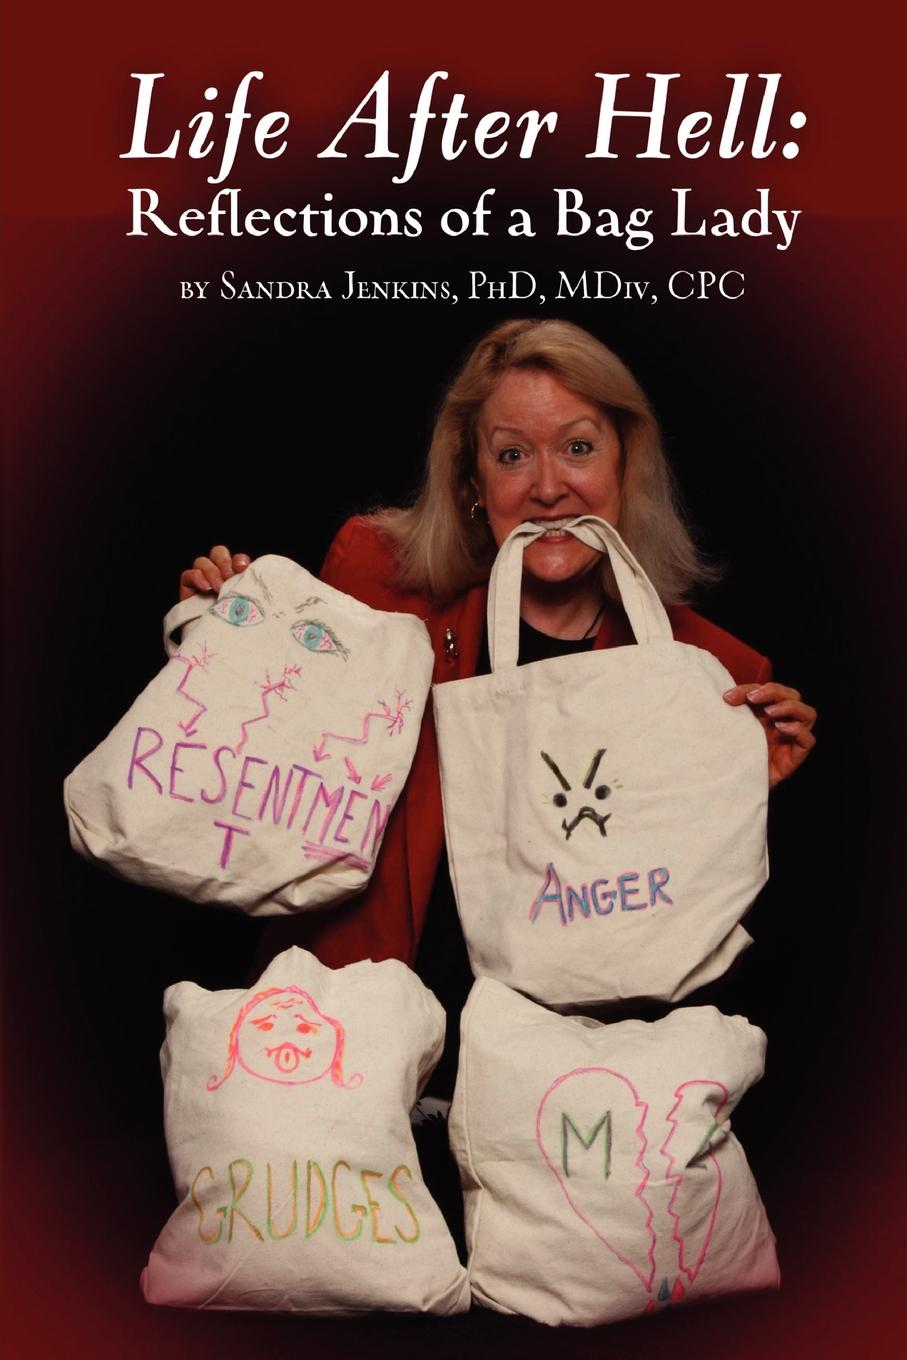 PhD MDiv CPC Sandra Jenkins Life After Hell. Reflections of a Bag Lady be transformed